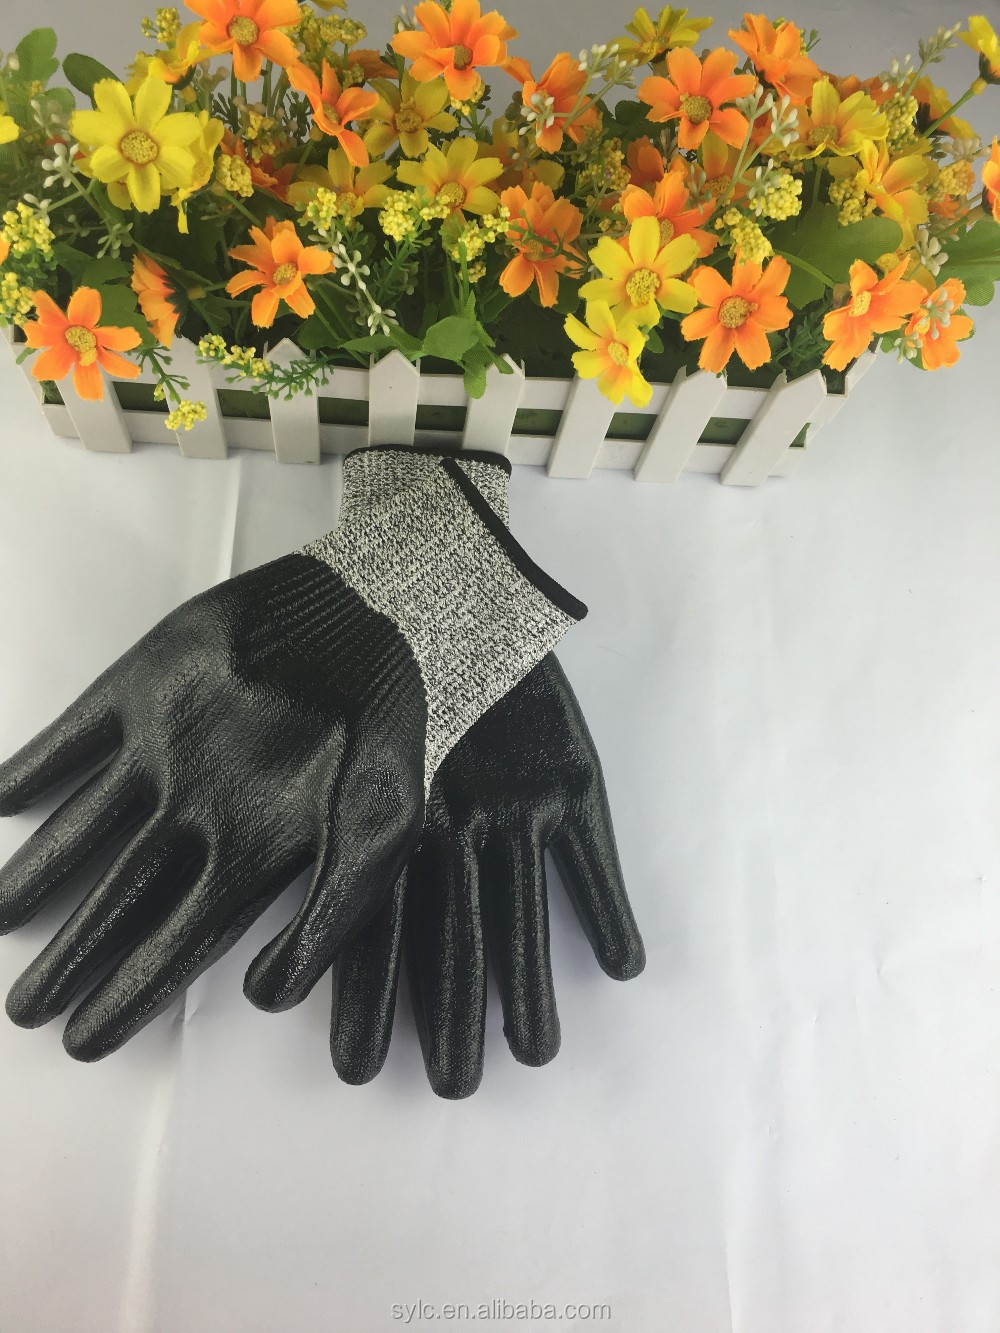 safety guard cut resistant gloves Processing 13 gauge meat glove